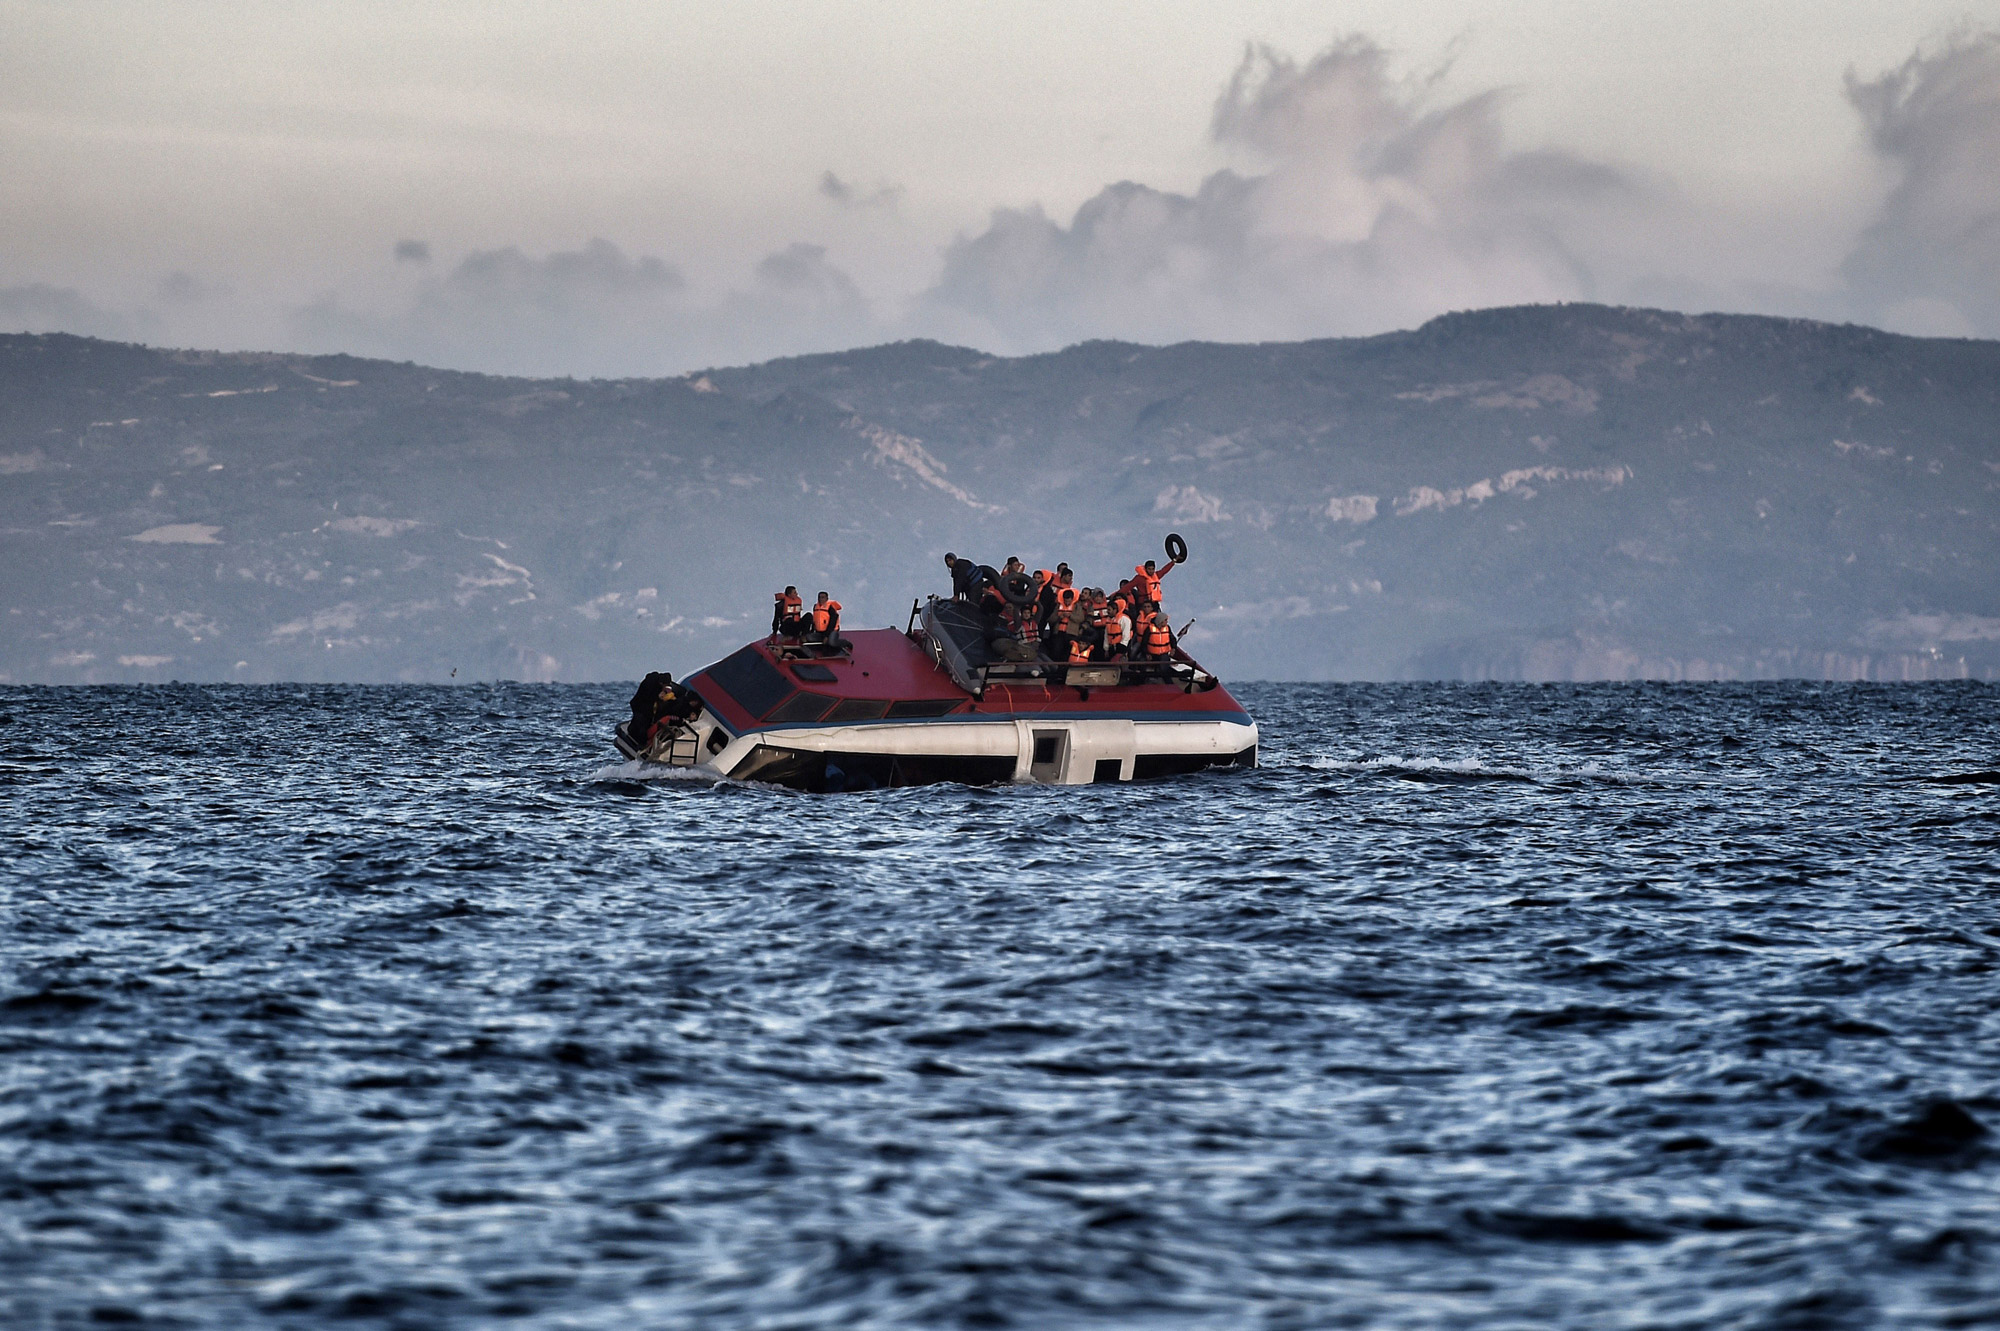 Refugees and migrants call for help as their boat is ready to sink off the Greek island of Lesbos on Oct. 30, 2015.